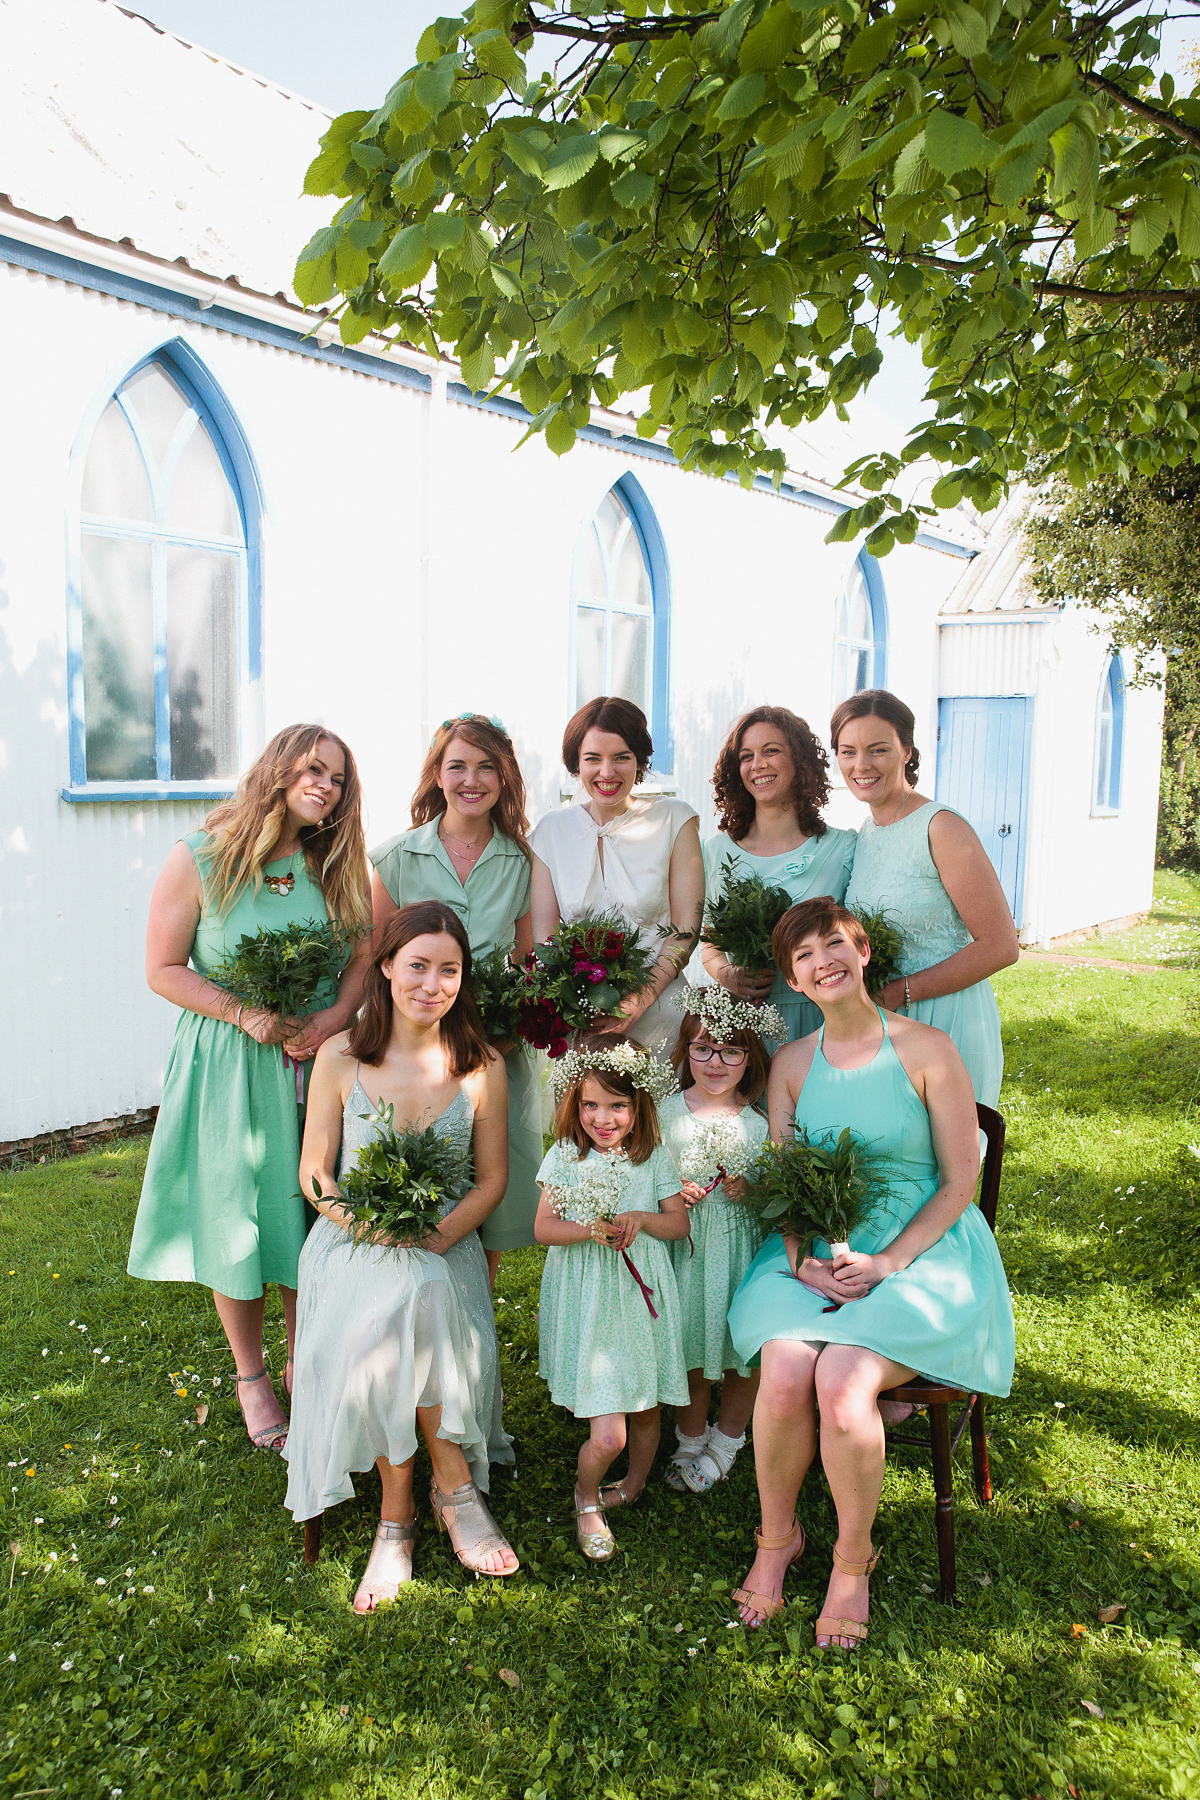 Green Dresses Group of People